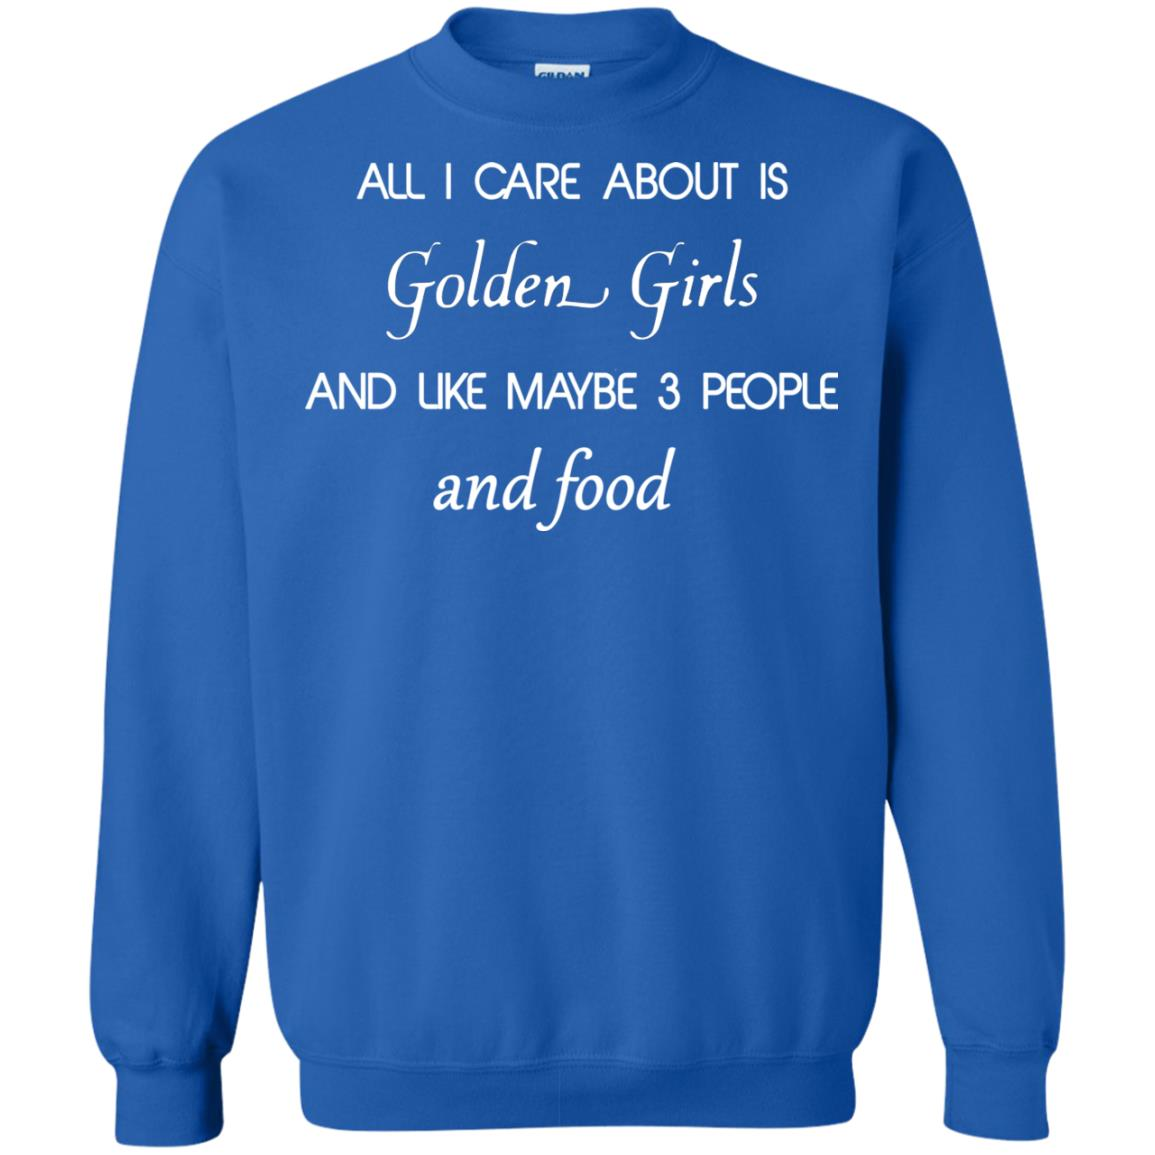 image 2696 - All I Care About Is Golden Girls Shirt, Hoodie